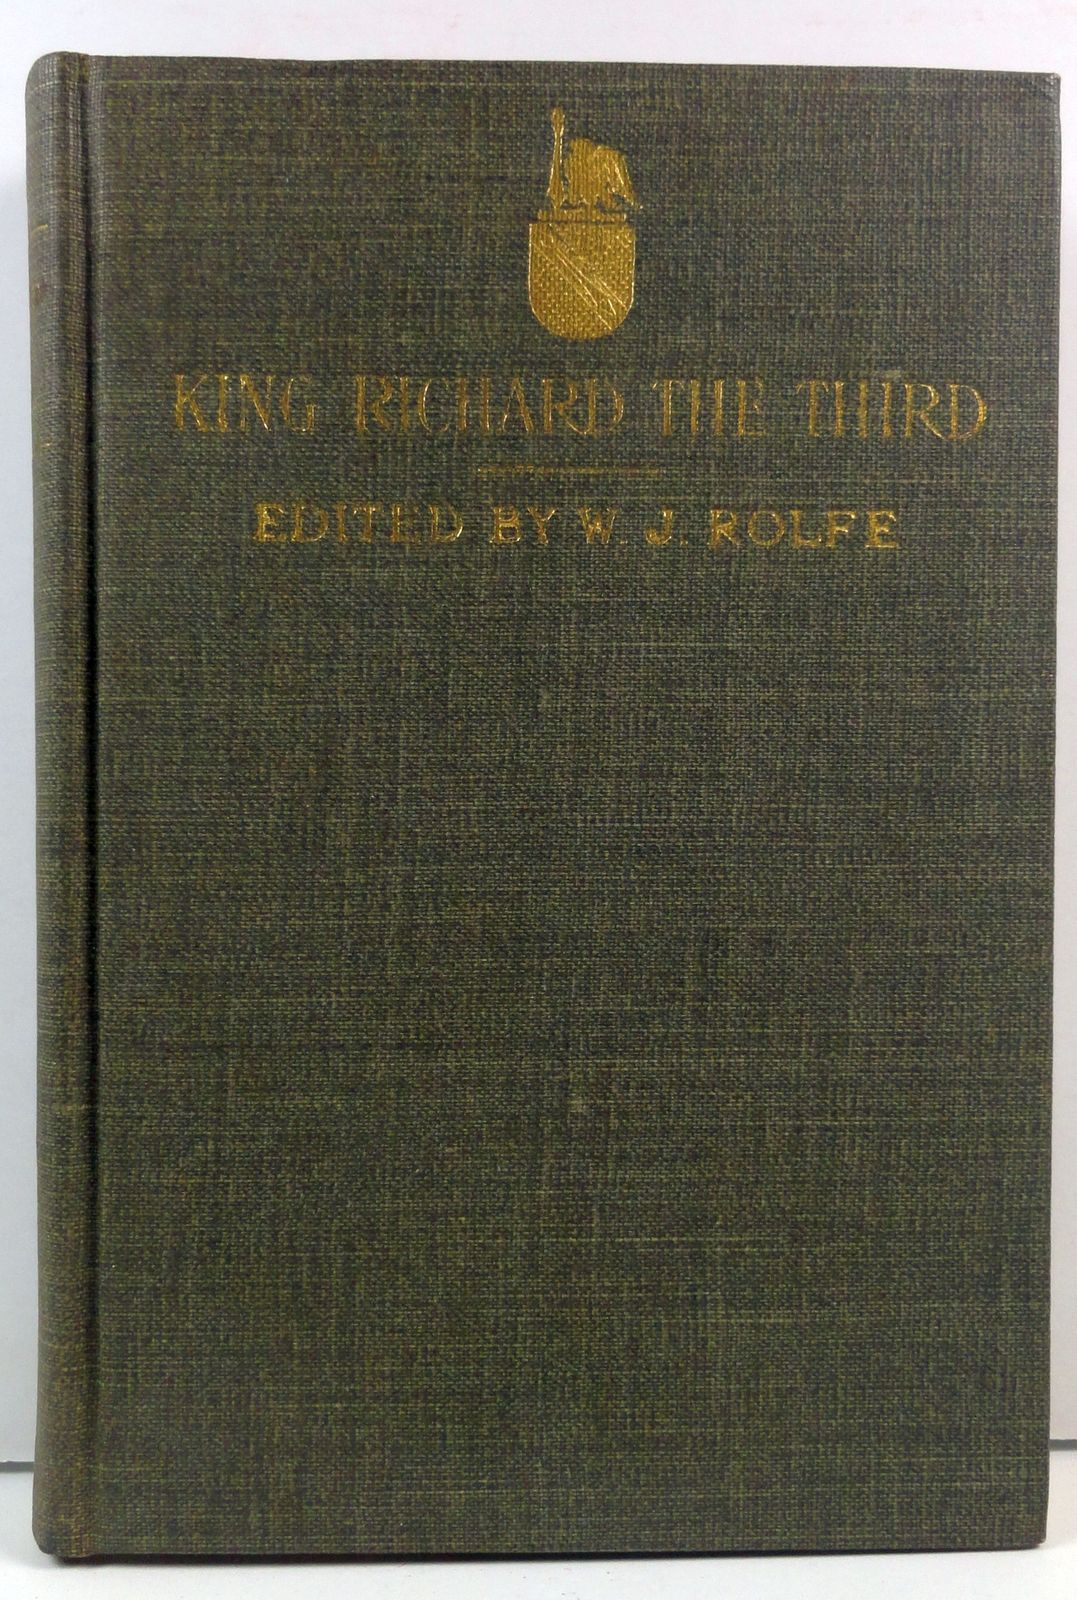 Primary image for Shakespeare's King Richard III edited by William Rolfe 1904